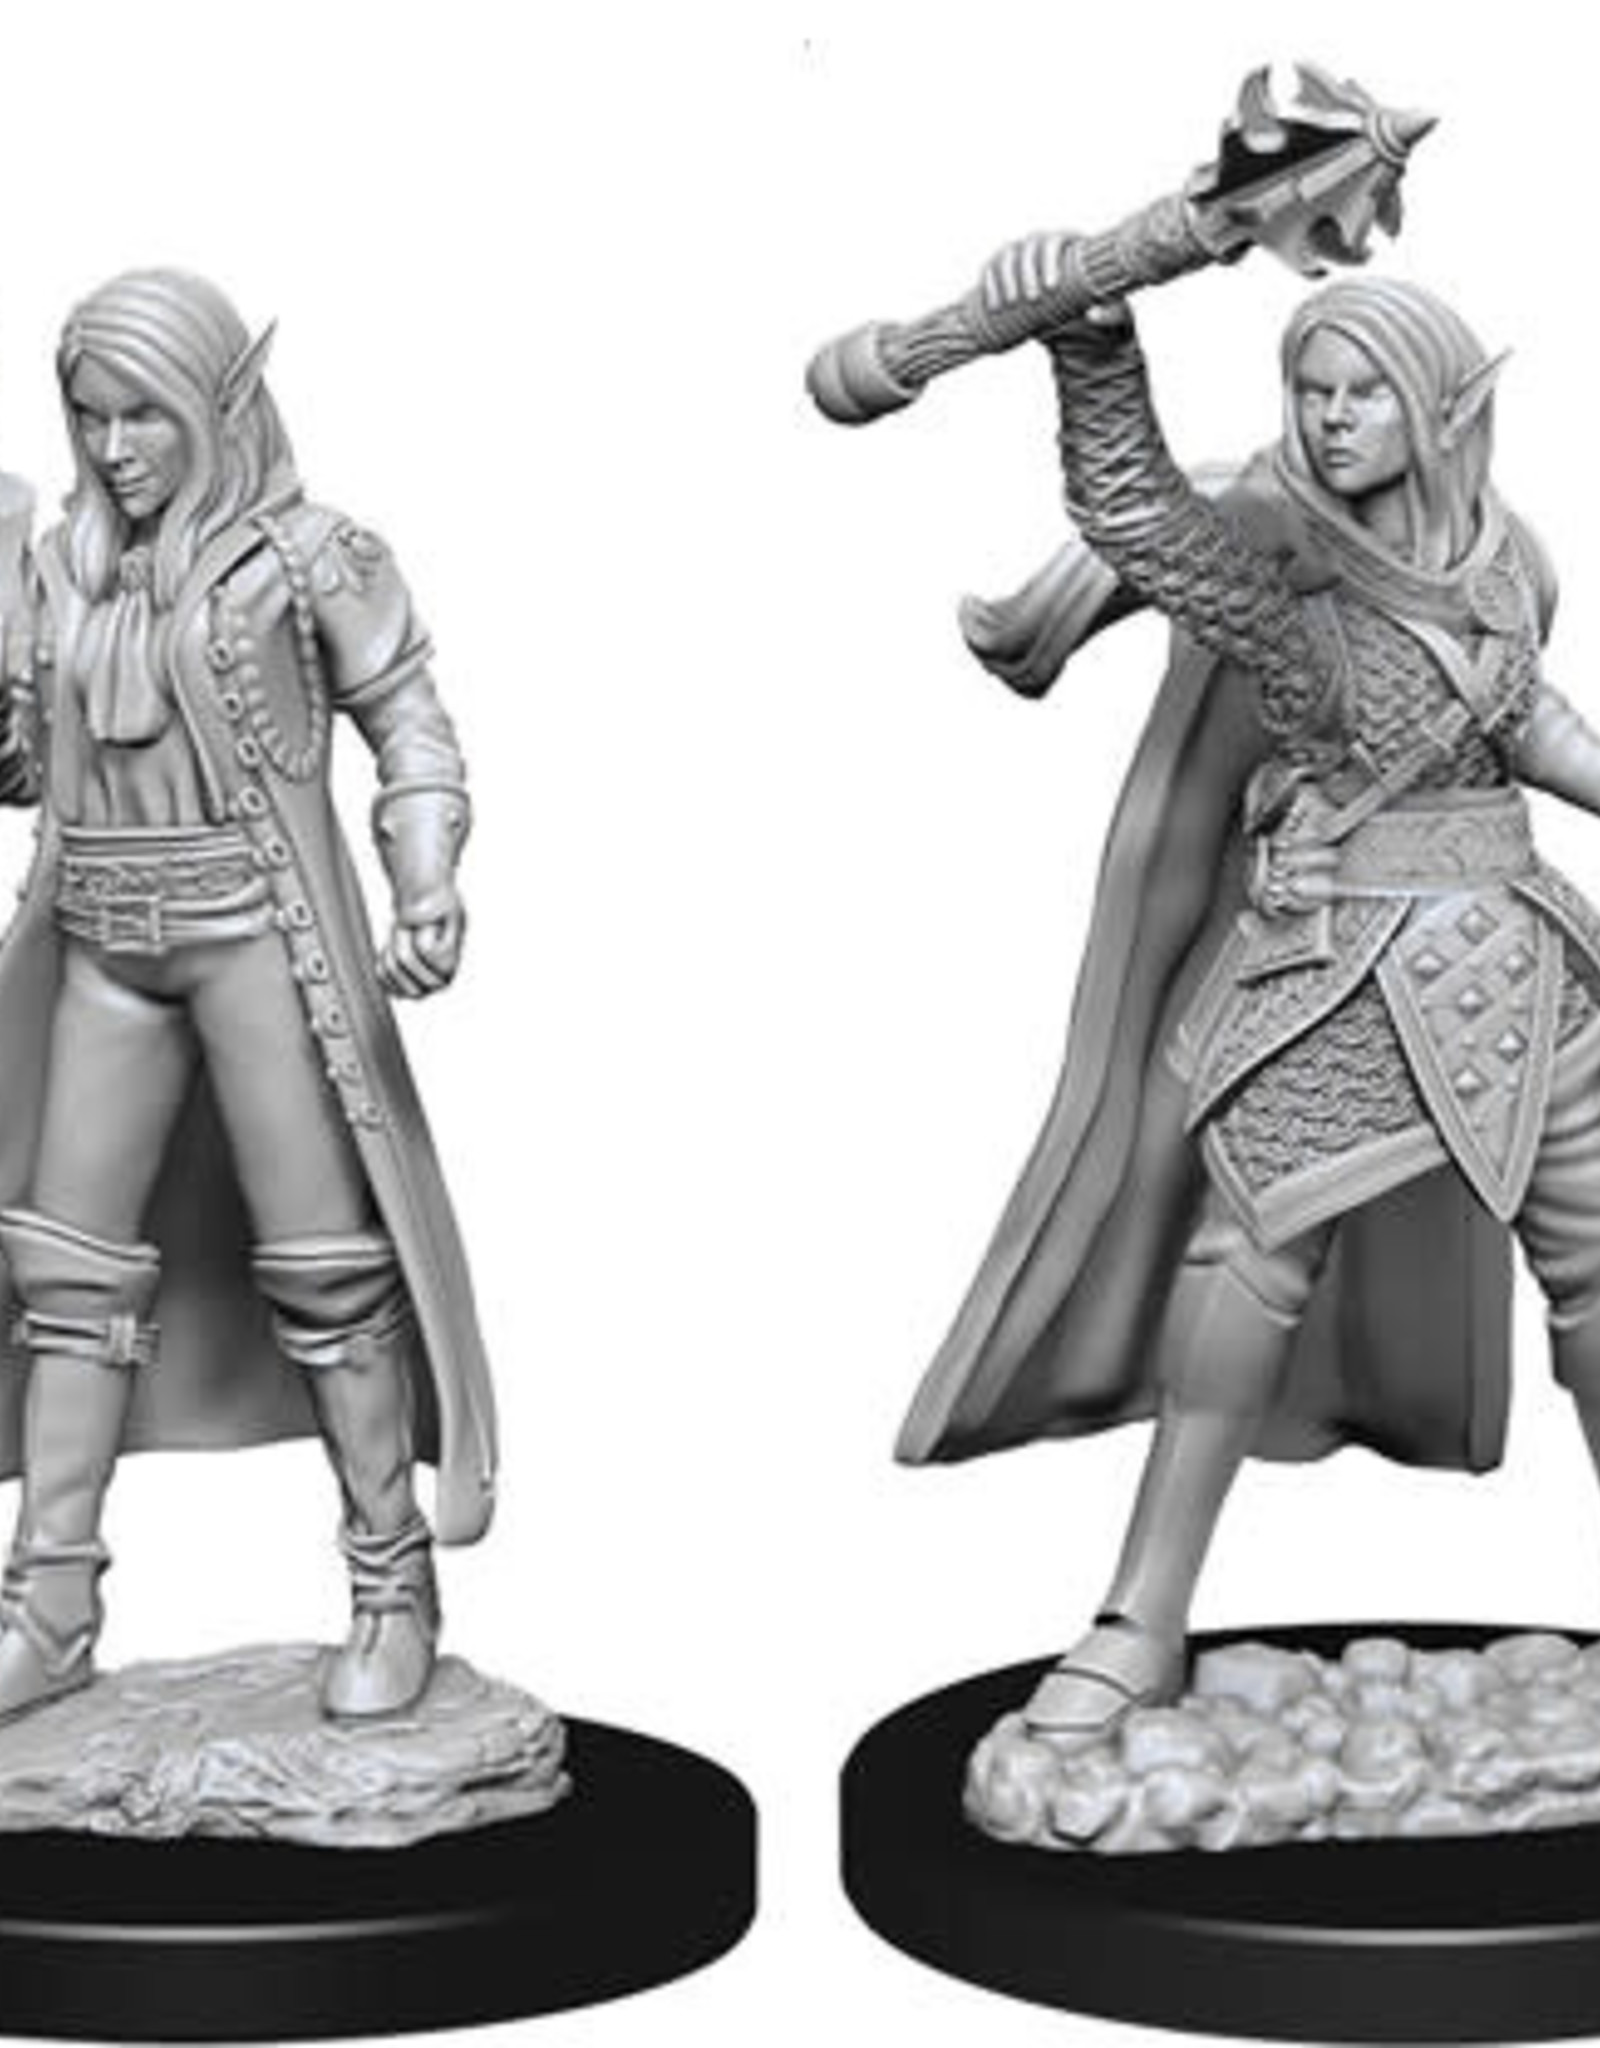 WizKids D&D Nolzur Elf Cleric (She/Her/They/Them)